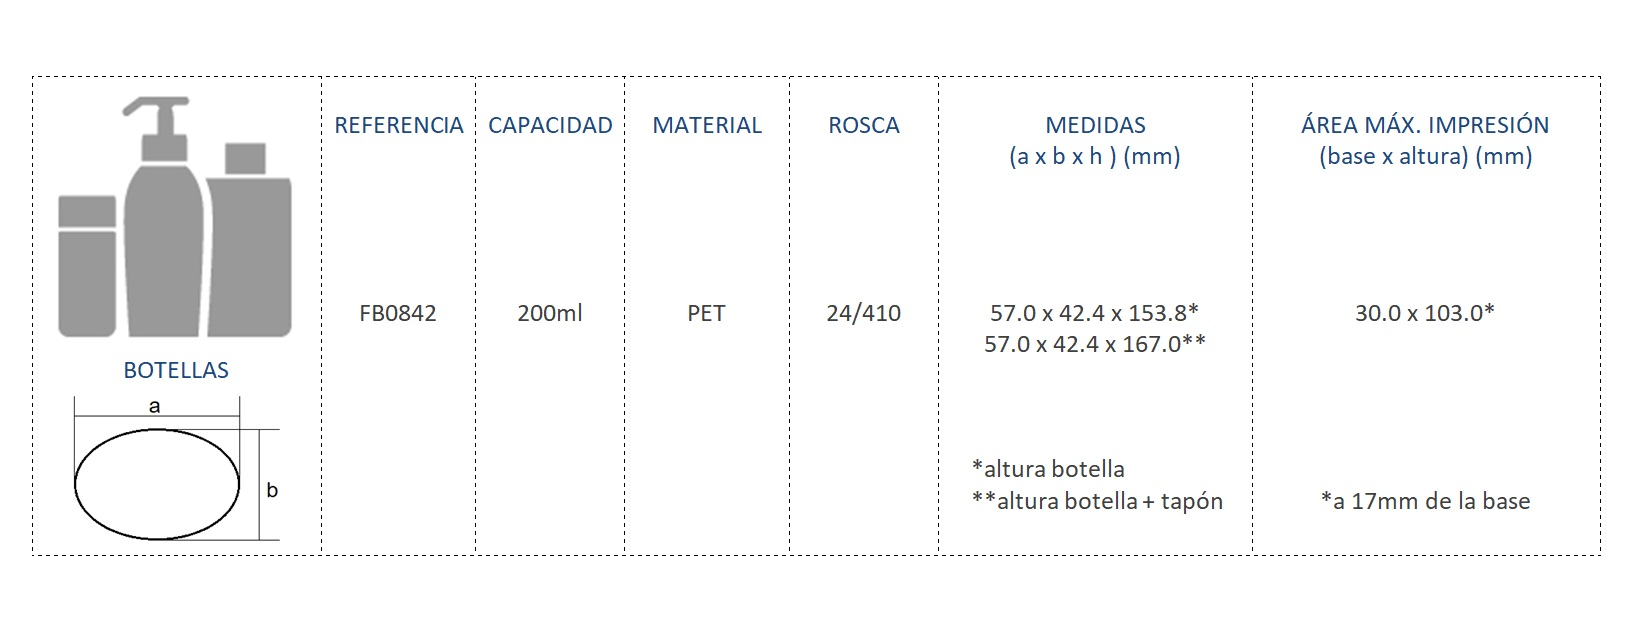 Cuadro de materiales botella FB0842